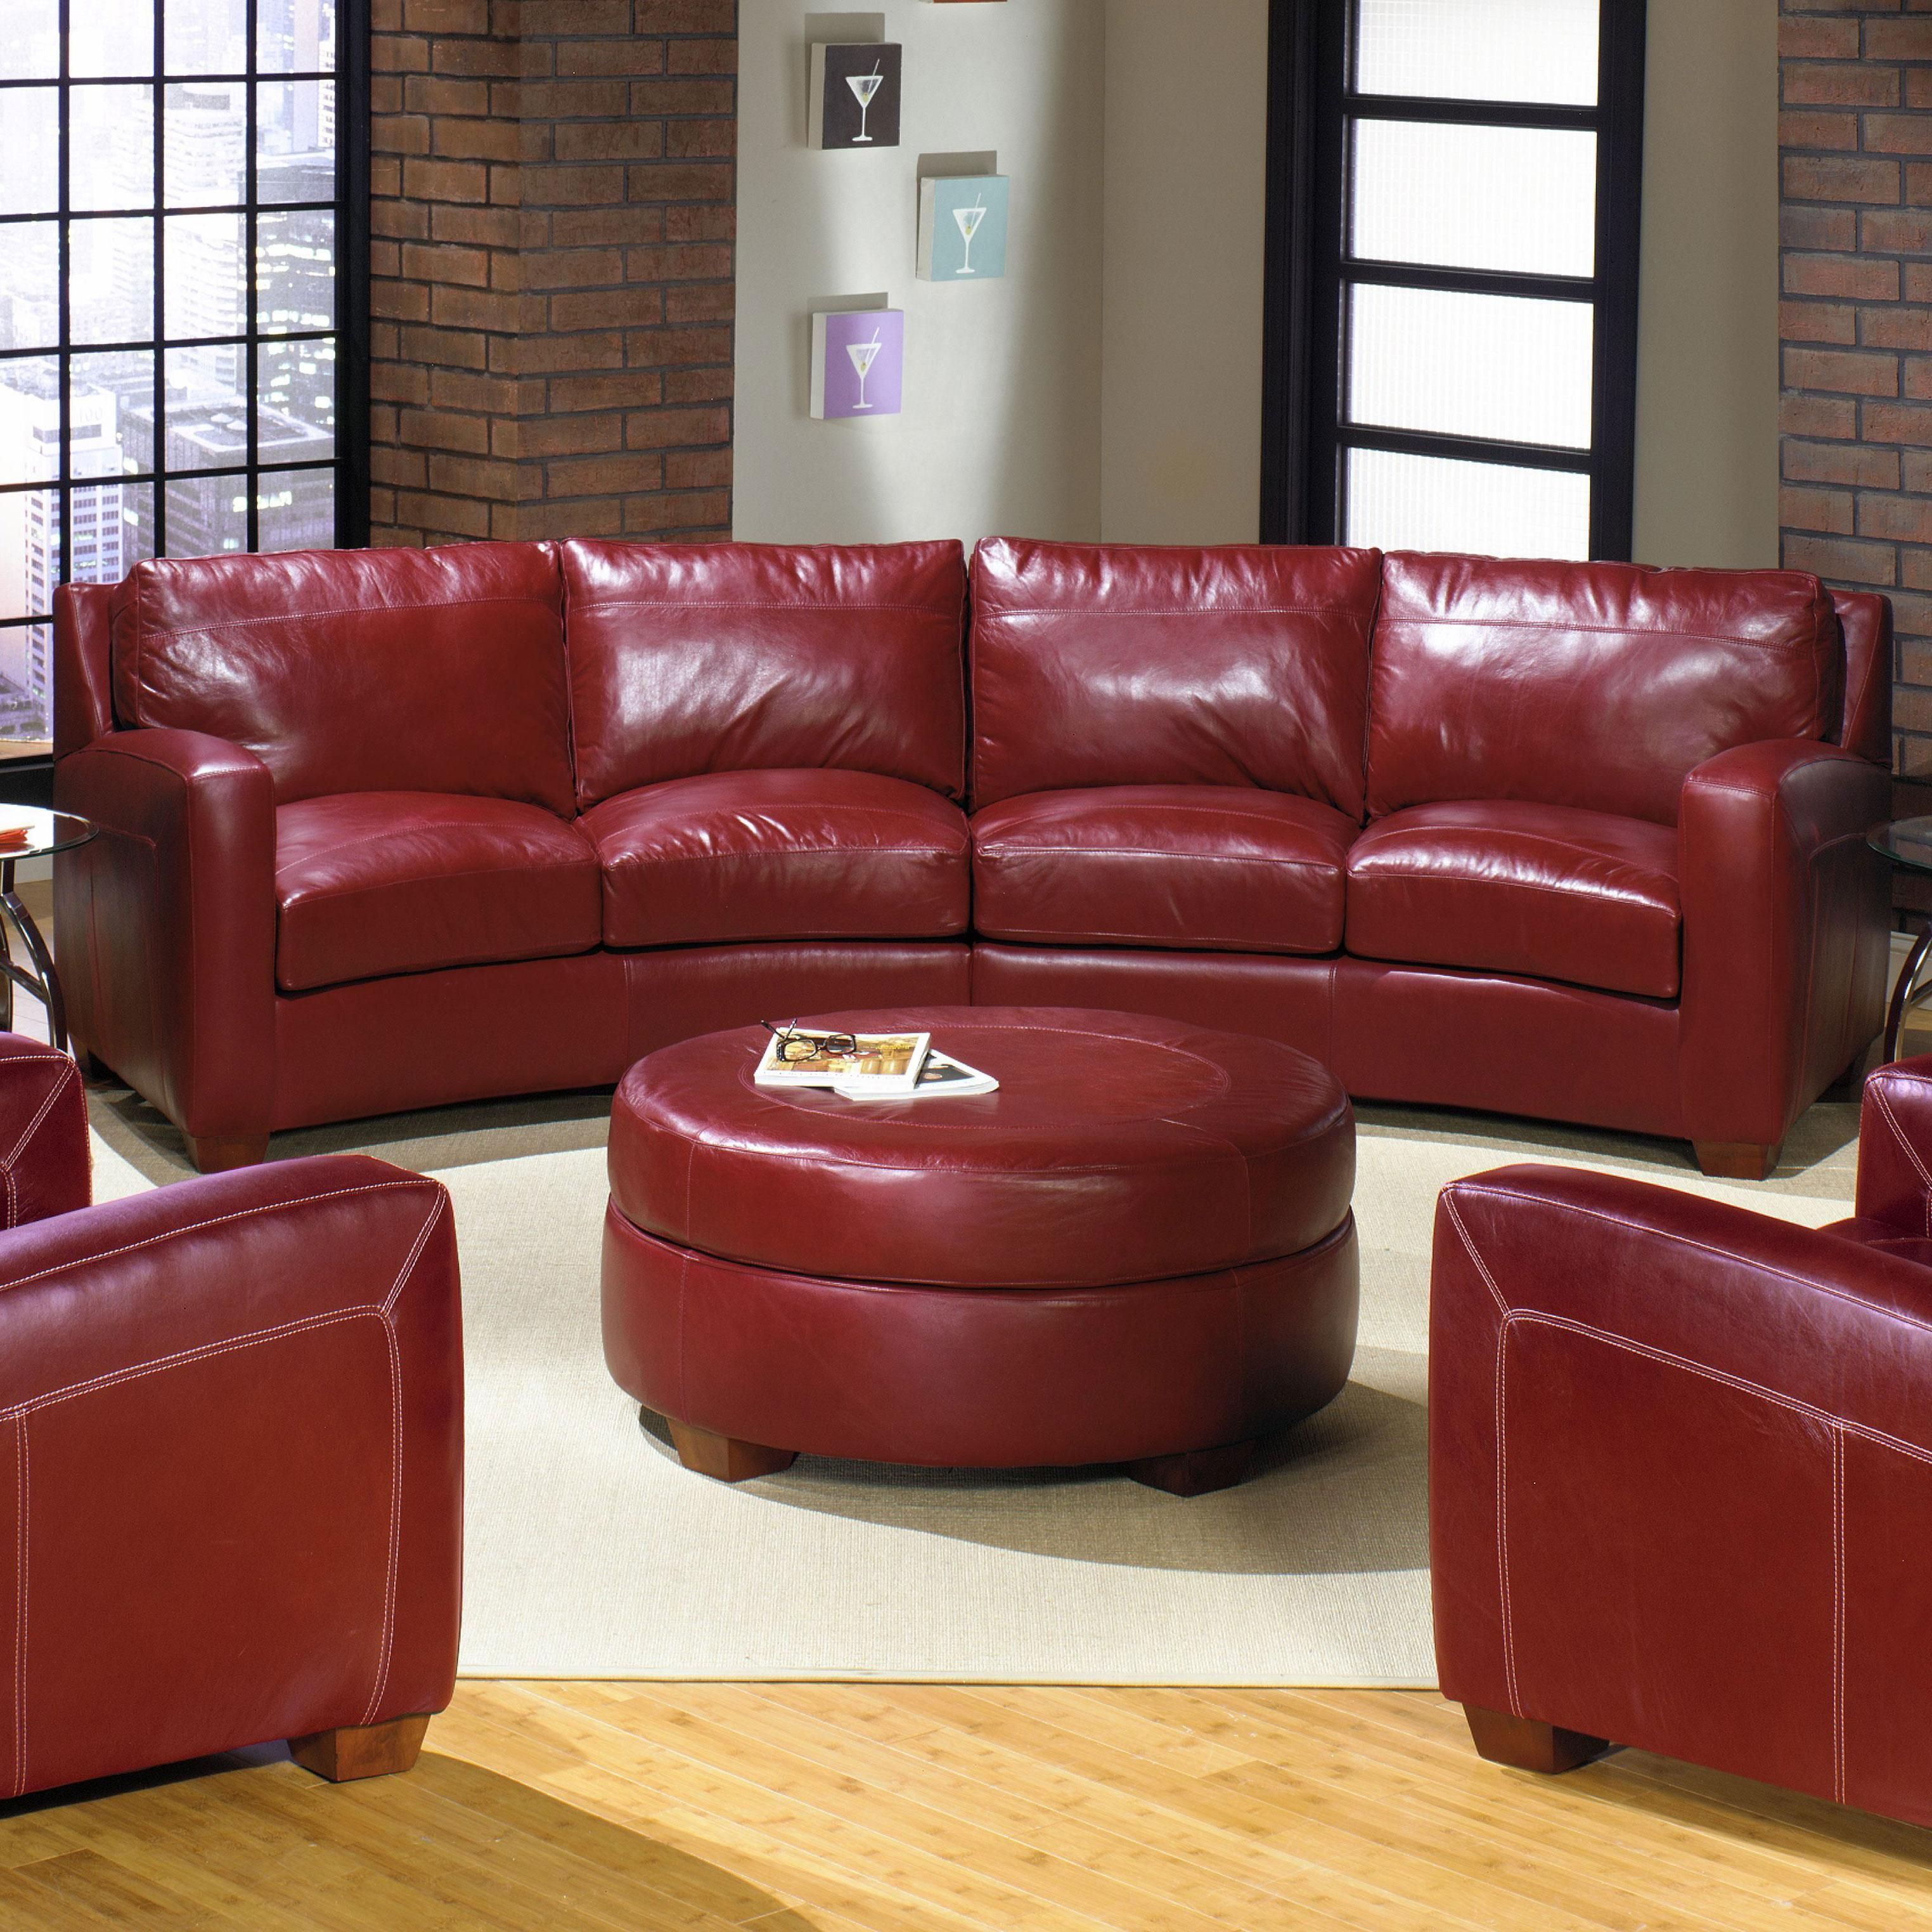 2950 2 Piece Leather Sectional Sofa By Usa Premium Leather Wolf